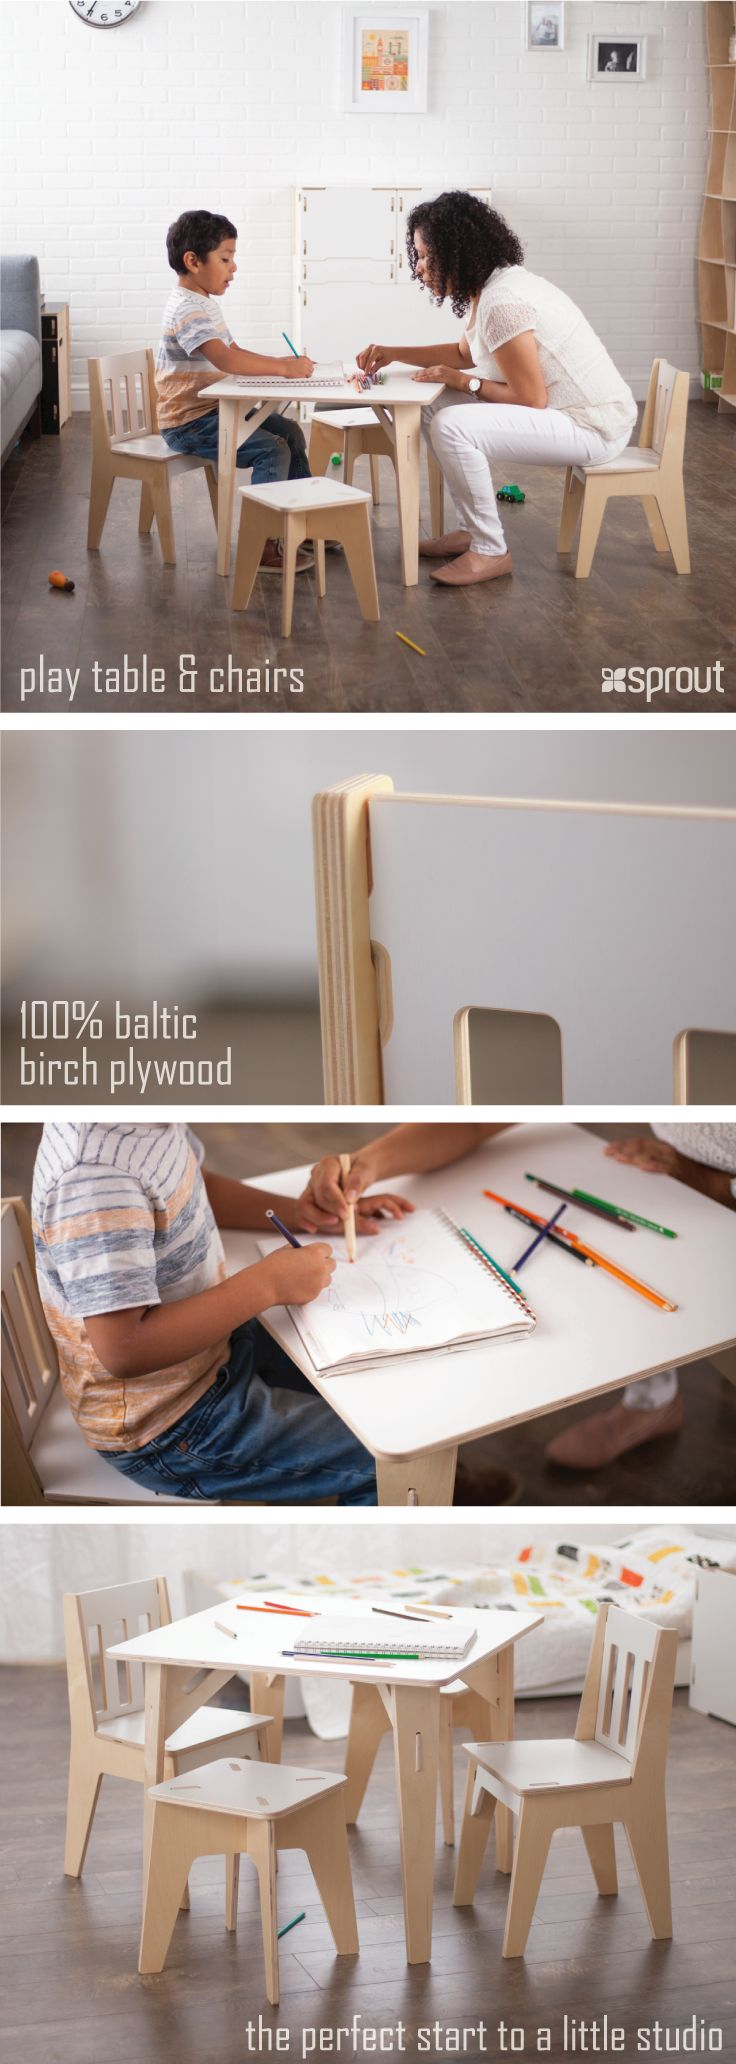 Every child needs a place to create, imagine, play, and dream. Start a little studio with Sprout's Wooden kids table and chairs. Play time was never so much fun, and there is room for friends, and even parents to join in. Children's table and chairs fit right into the modern aesthetic of a home, letting parent and kid space co-exist. Made from 100% Baltic birch plywood, the toddler's table and chair set is durable and will last your family for years.